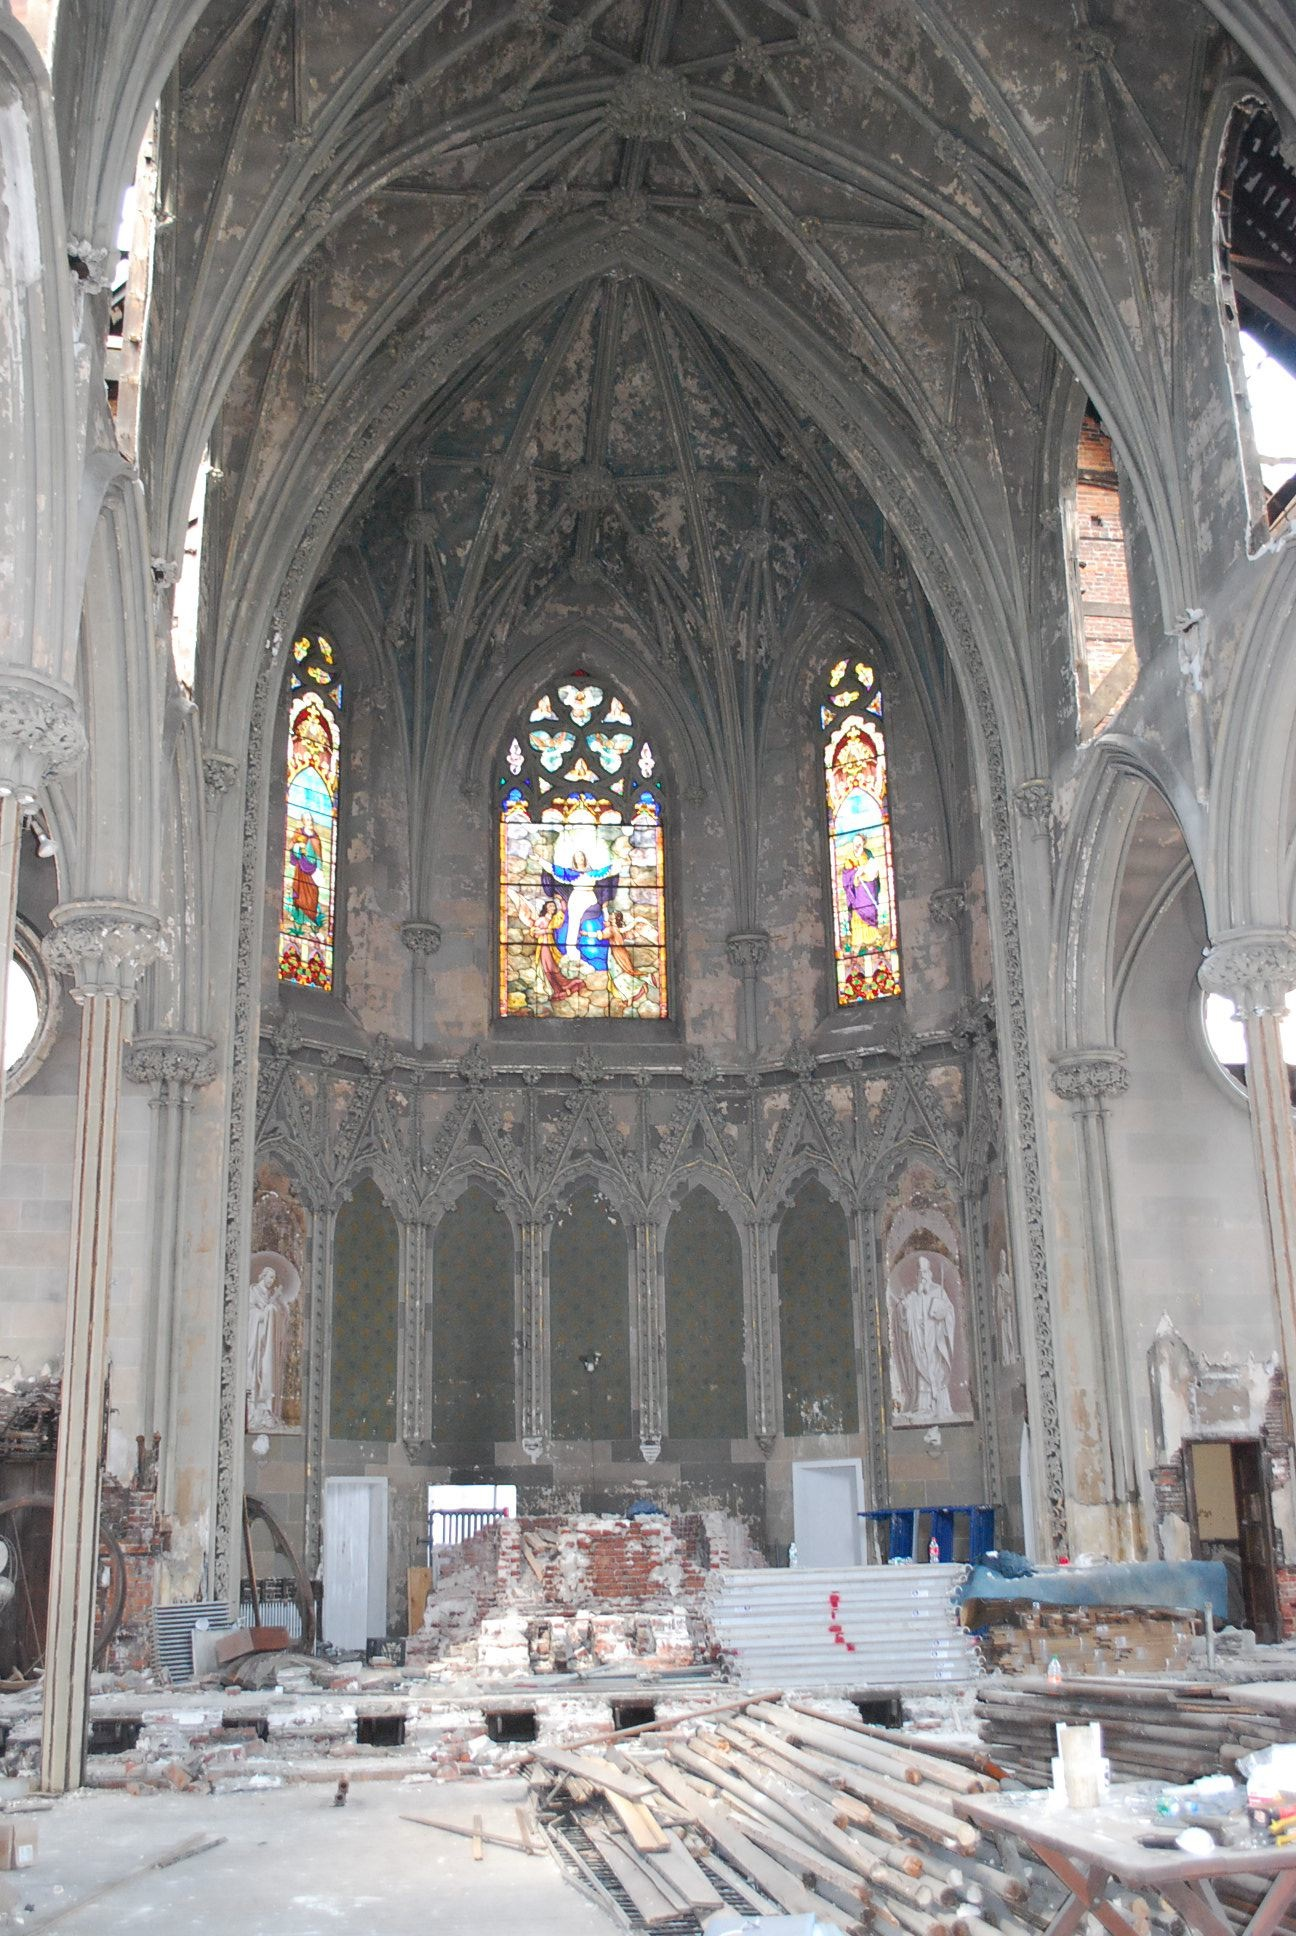 A view of the church interior after Siloam began demolition.